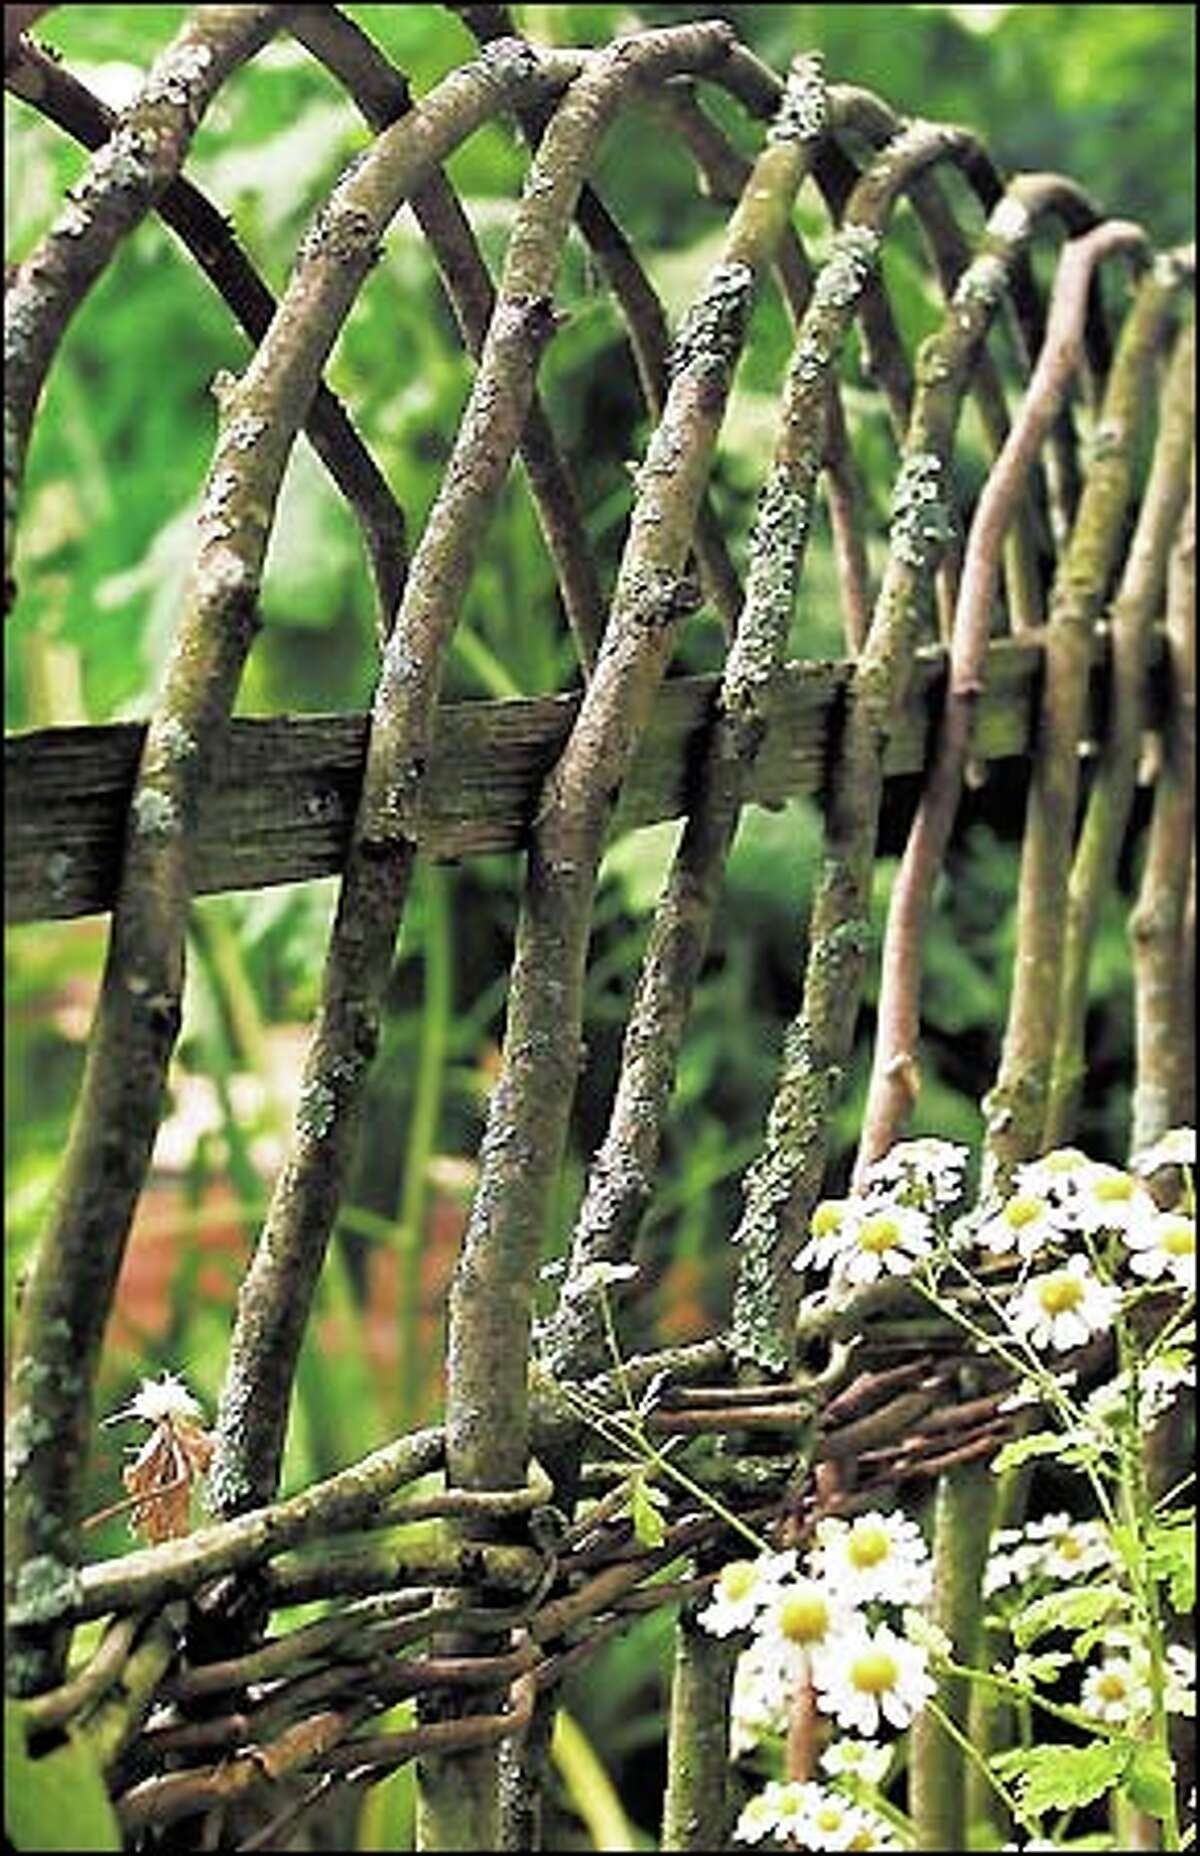 Spacing and form by Skelly turns a wattle fence from utilitarian into a work of art. Note the many angles represented through the use of cross-weaving and naturally bending branches.